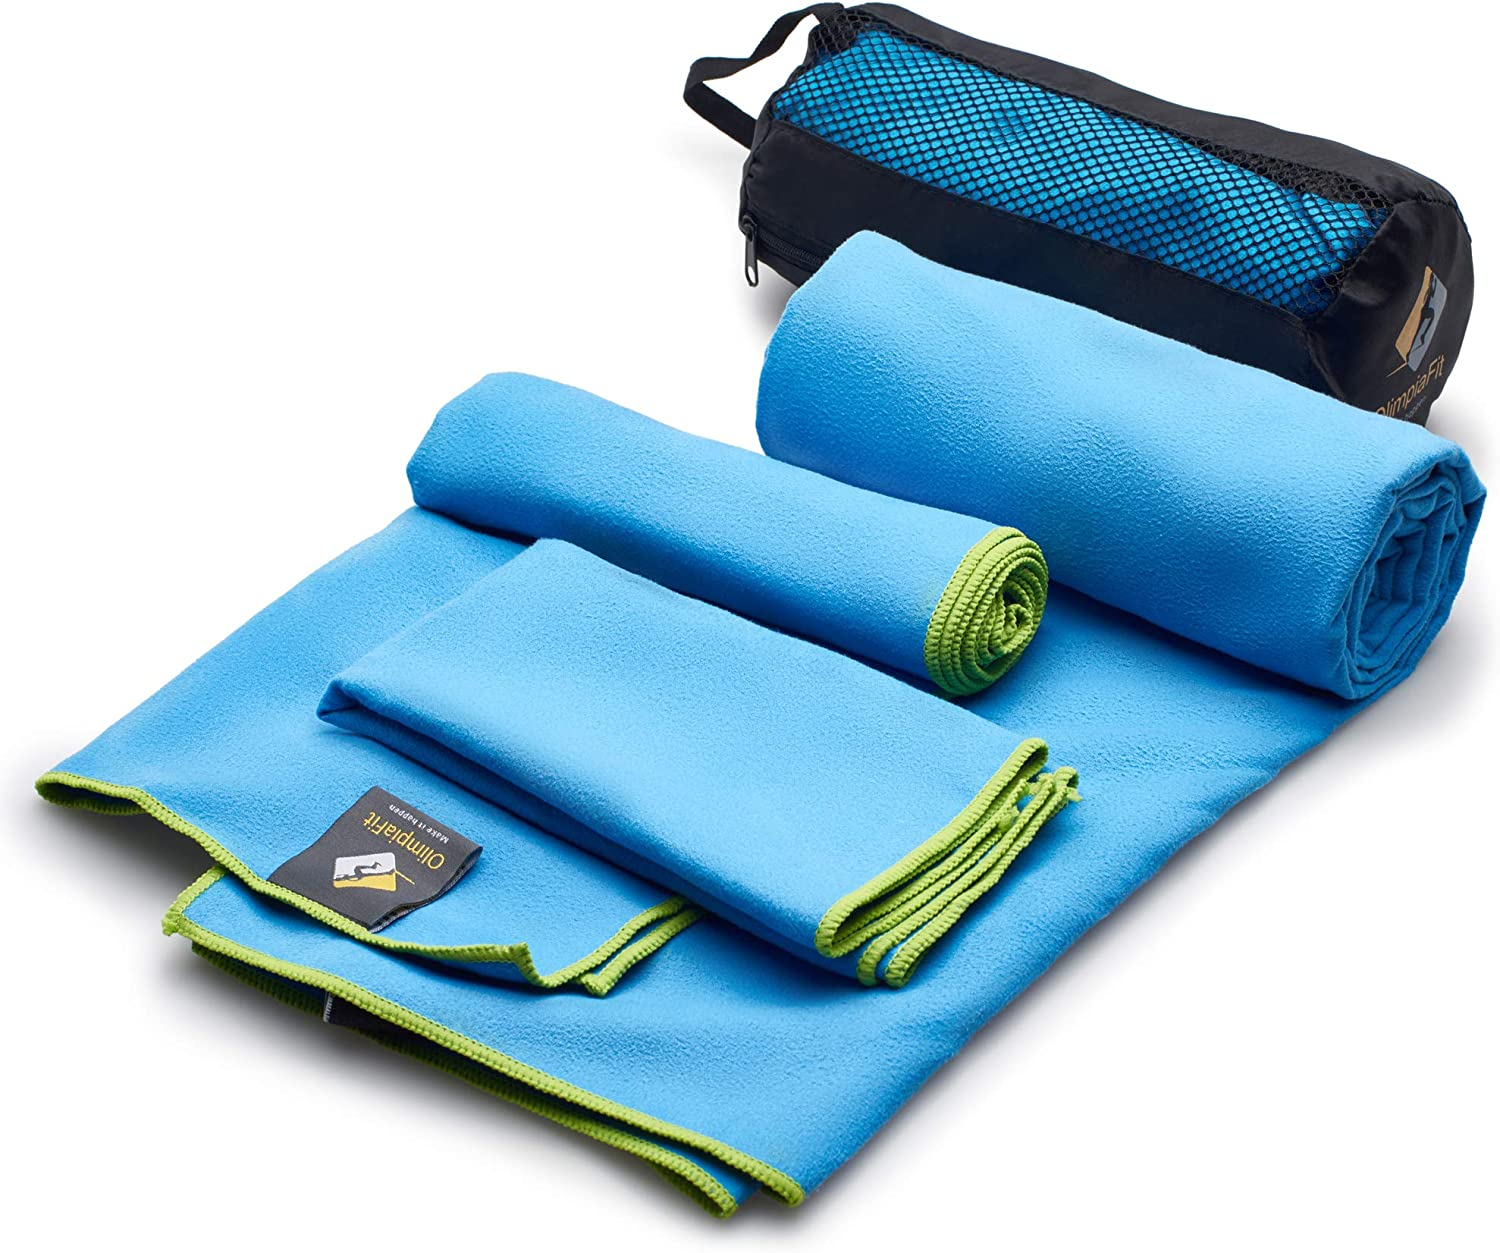 Set of 3 Microfiber Towels  Best For Gym Sports Travel Camp Outdoor  Quick Dry   Absorbent   Antimicrobial   Compact   Lightweight  Gift Toiletry Bag